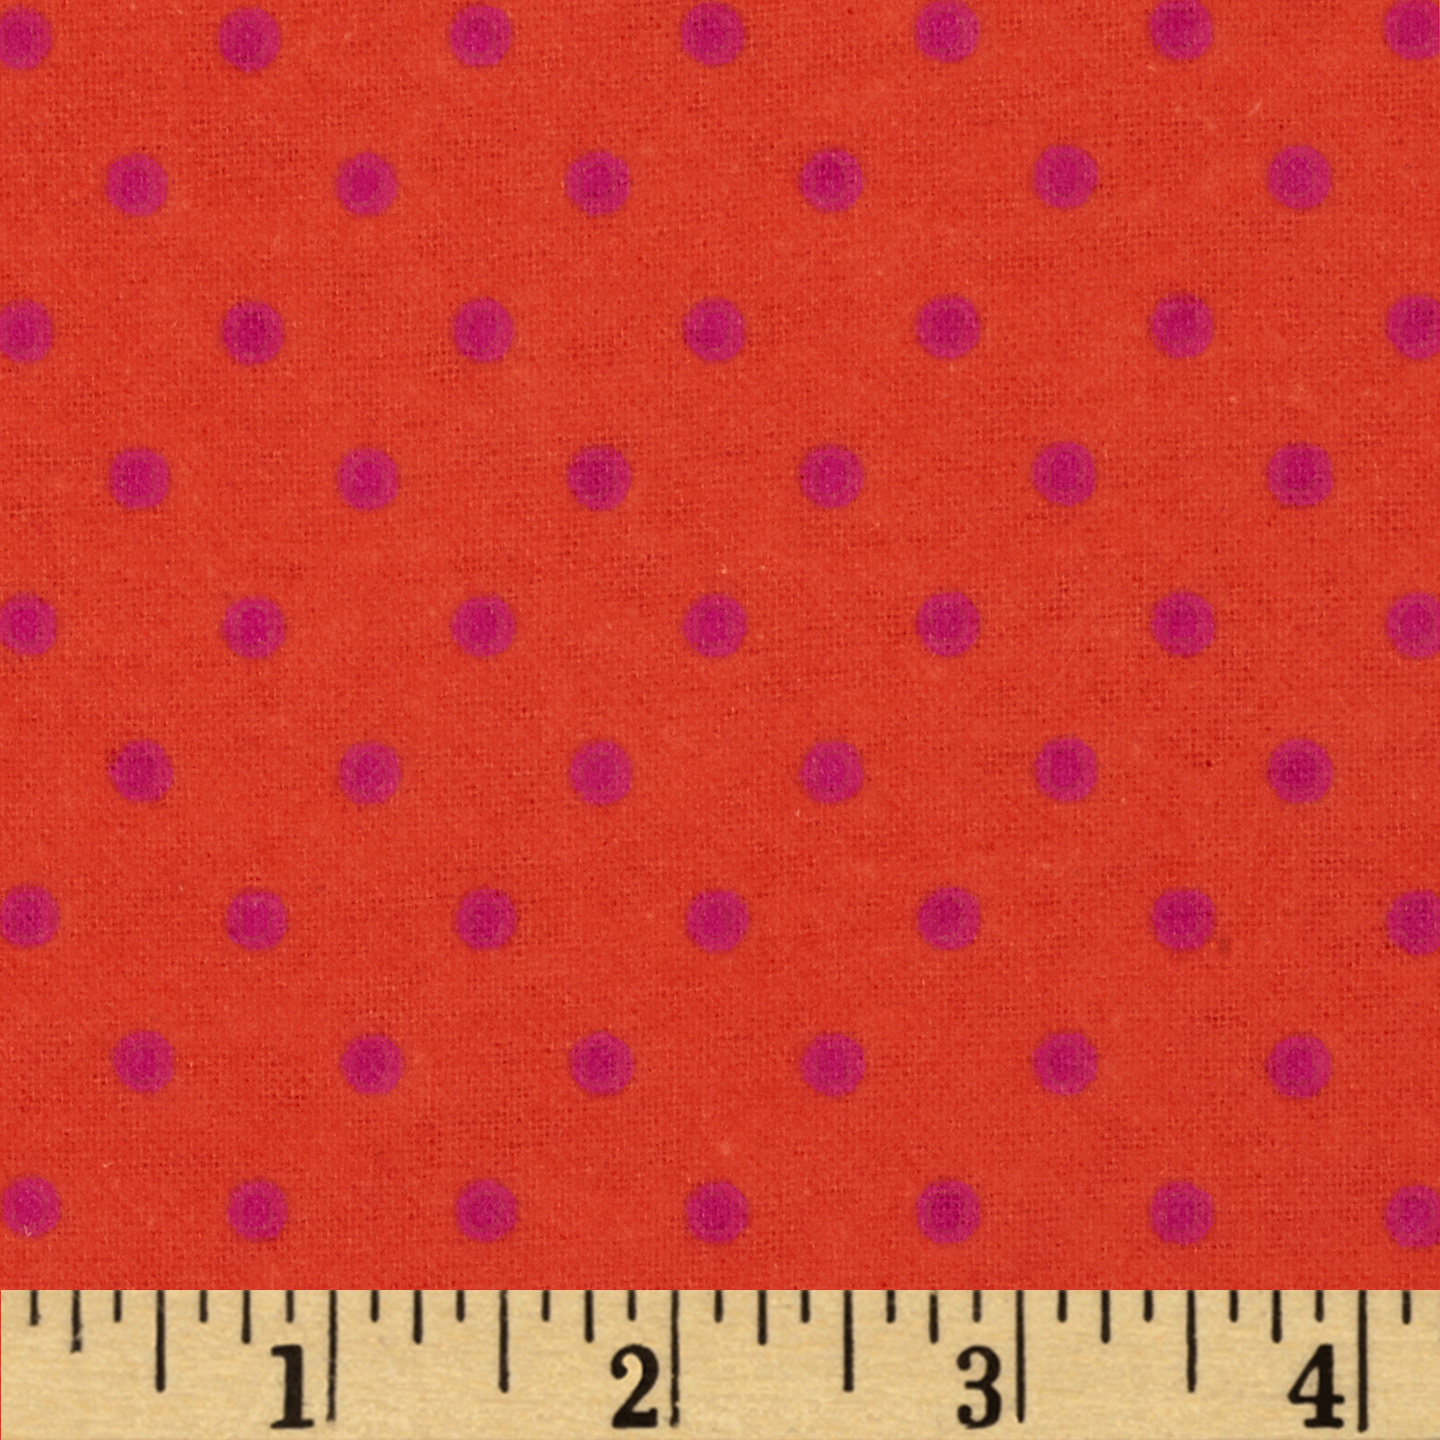 Aunt Polly's Flannel Small Polka Dots Orange/Magenta Fabric